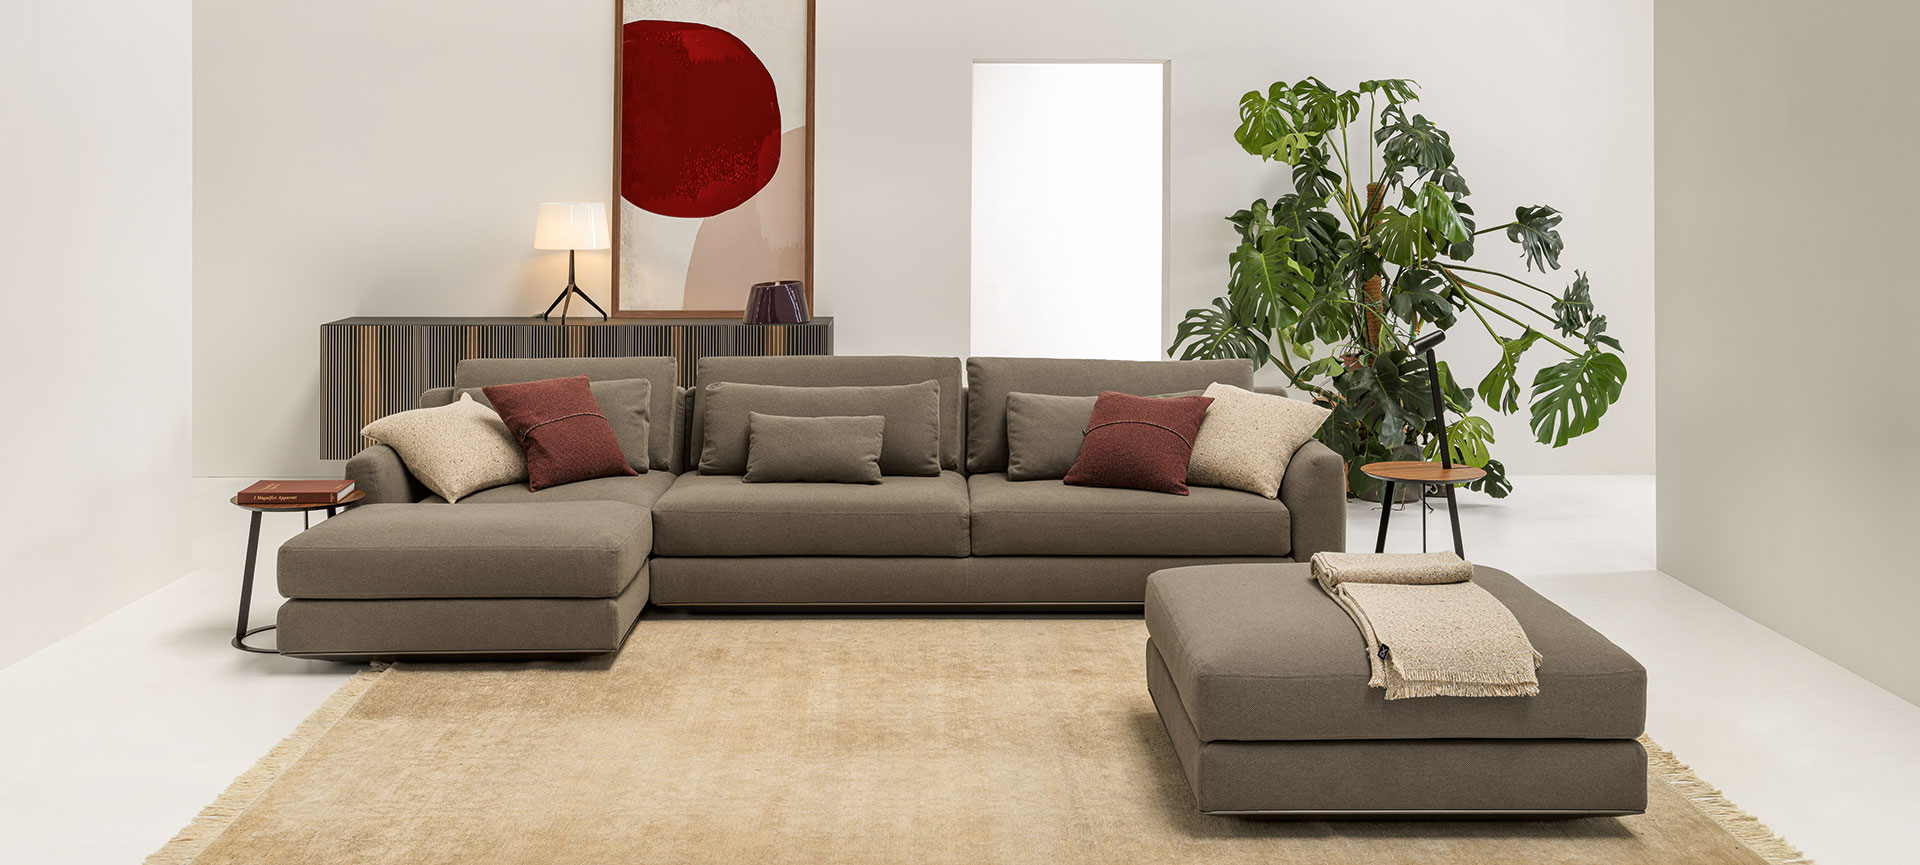 Living room with brown Ellington sofa and Carlos sideboard